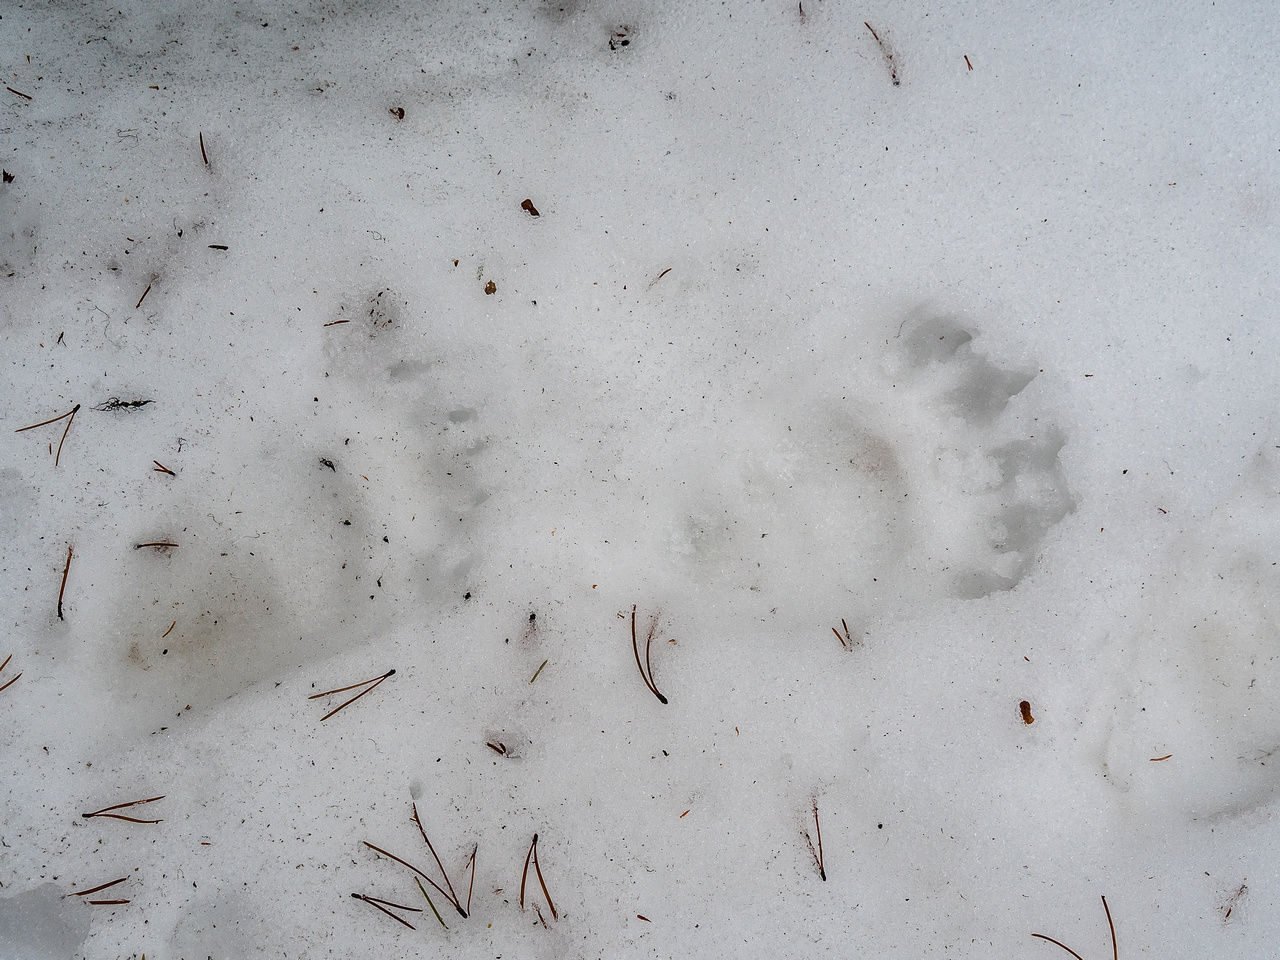 Interesting tracks - too small for bear.